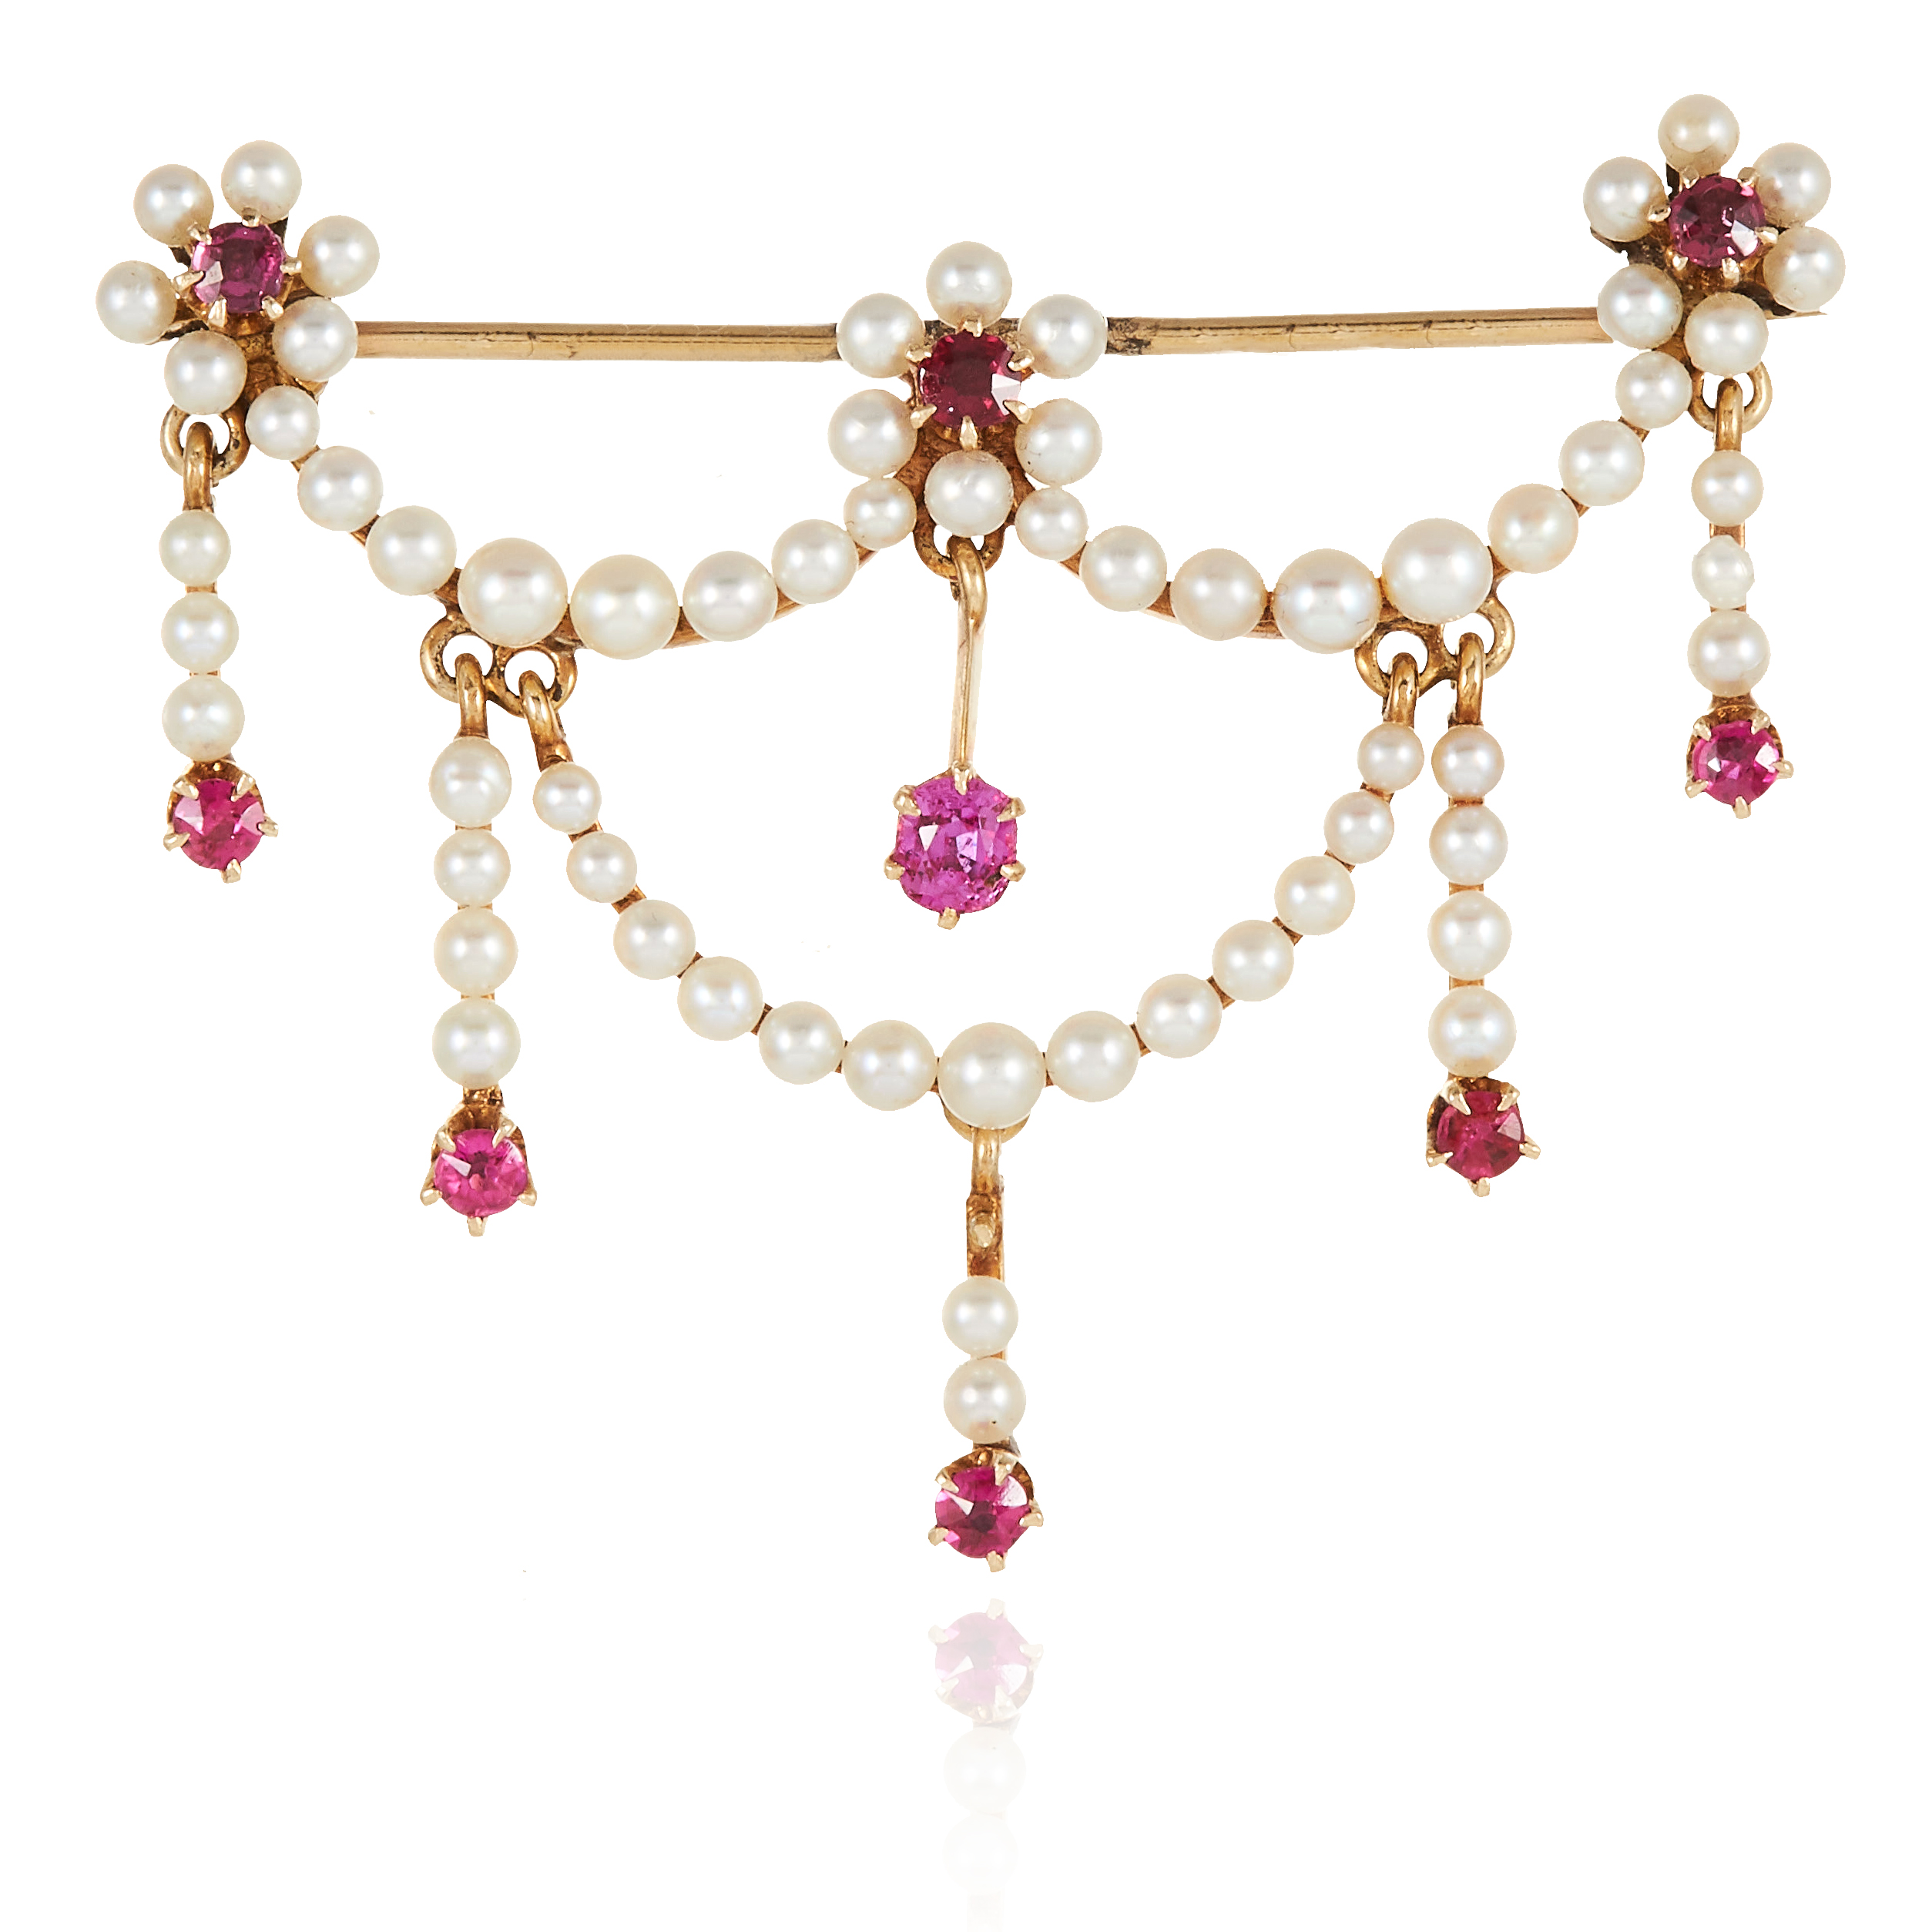 AN ANTIQUE PEARL AND RUBY BROOCH in yellow gold, comprising of floral and ribbon motif, jewelled